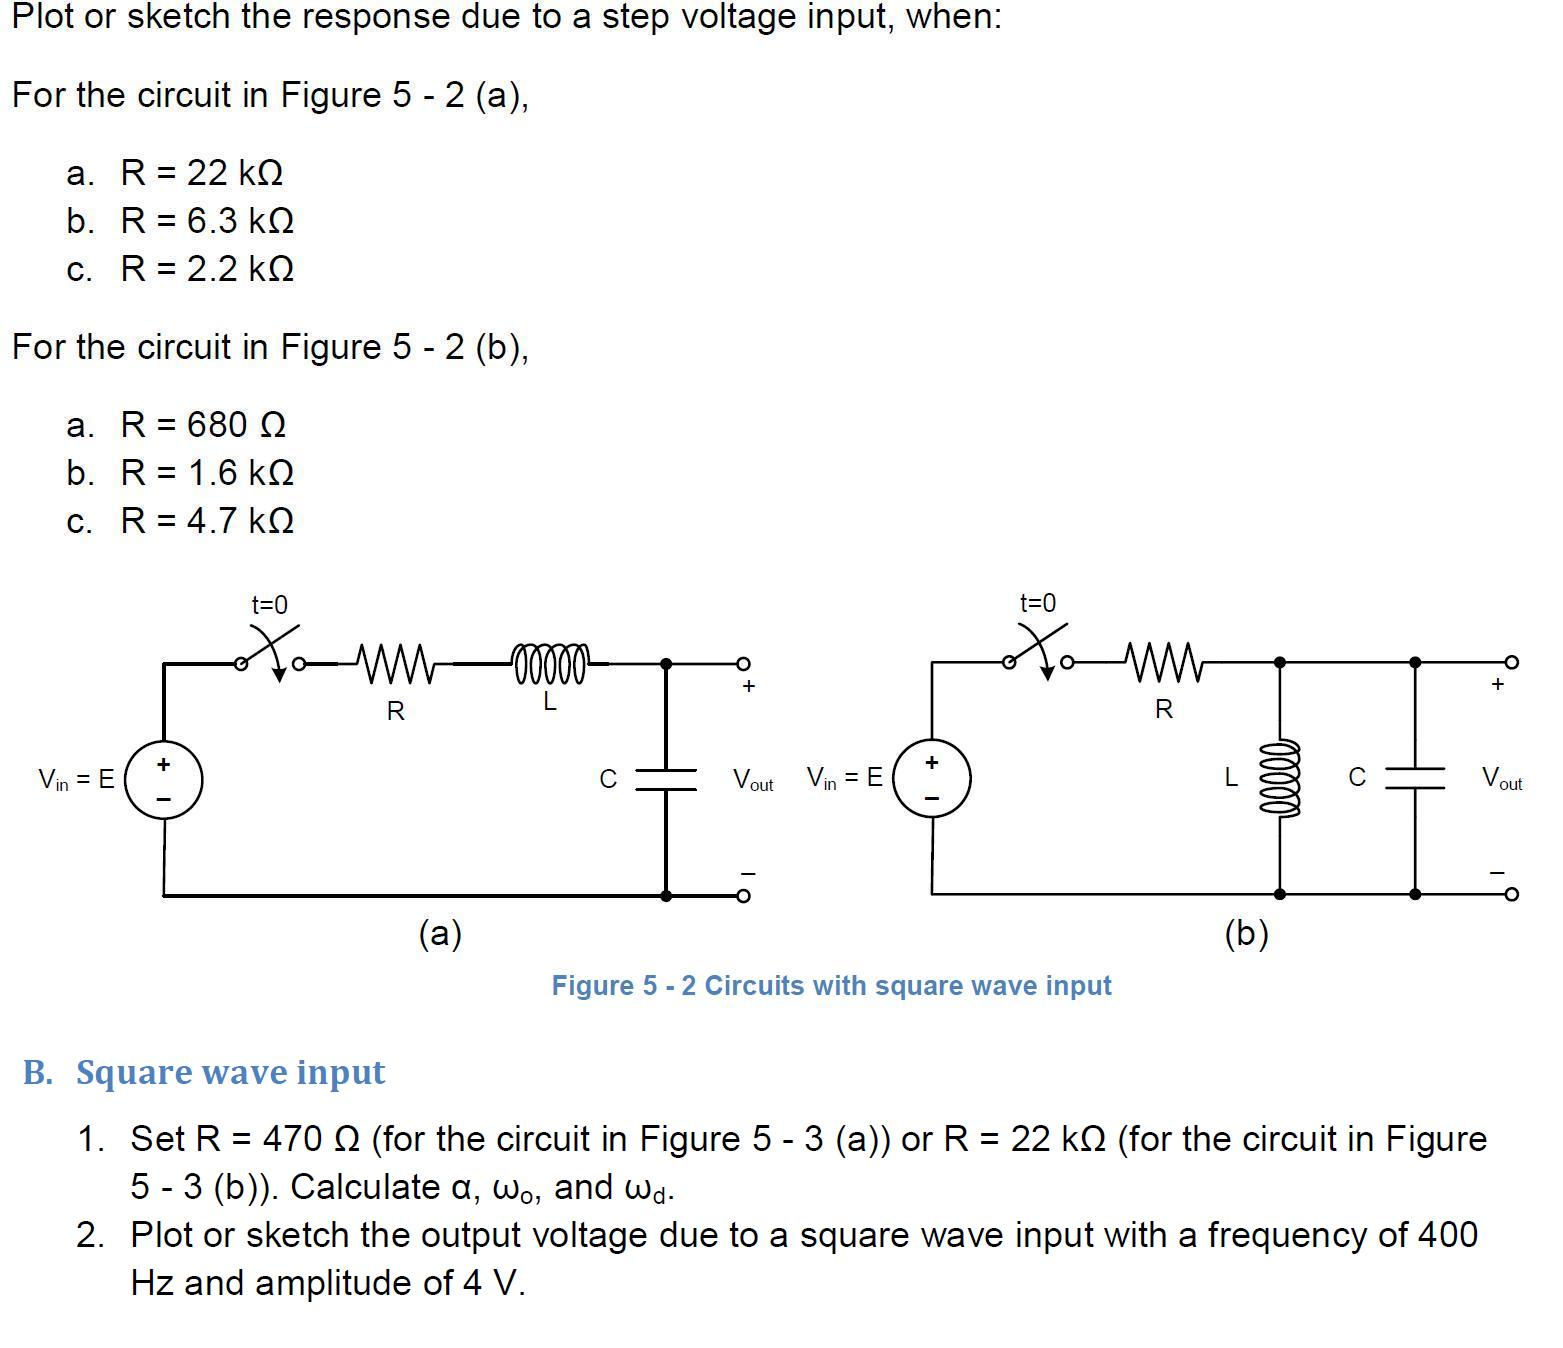 Plot or sketch the response due to a step voltage